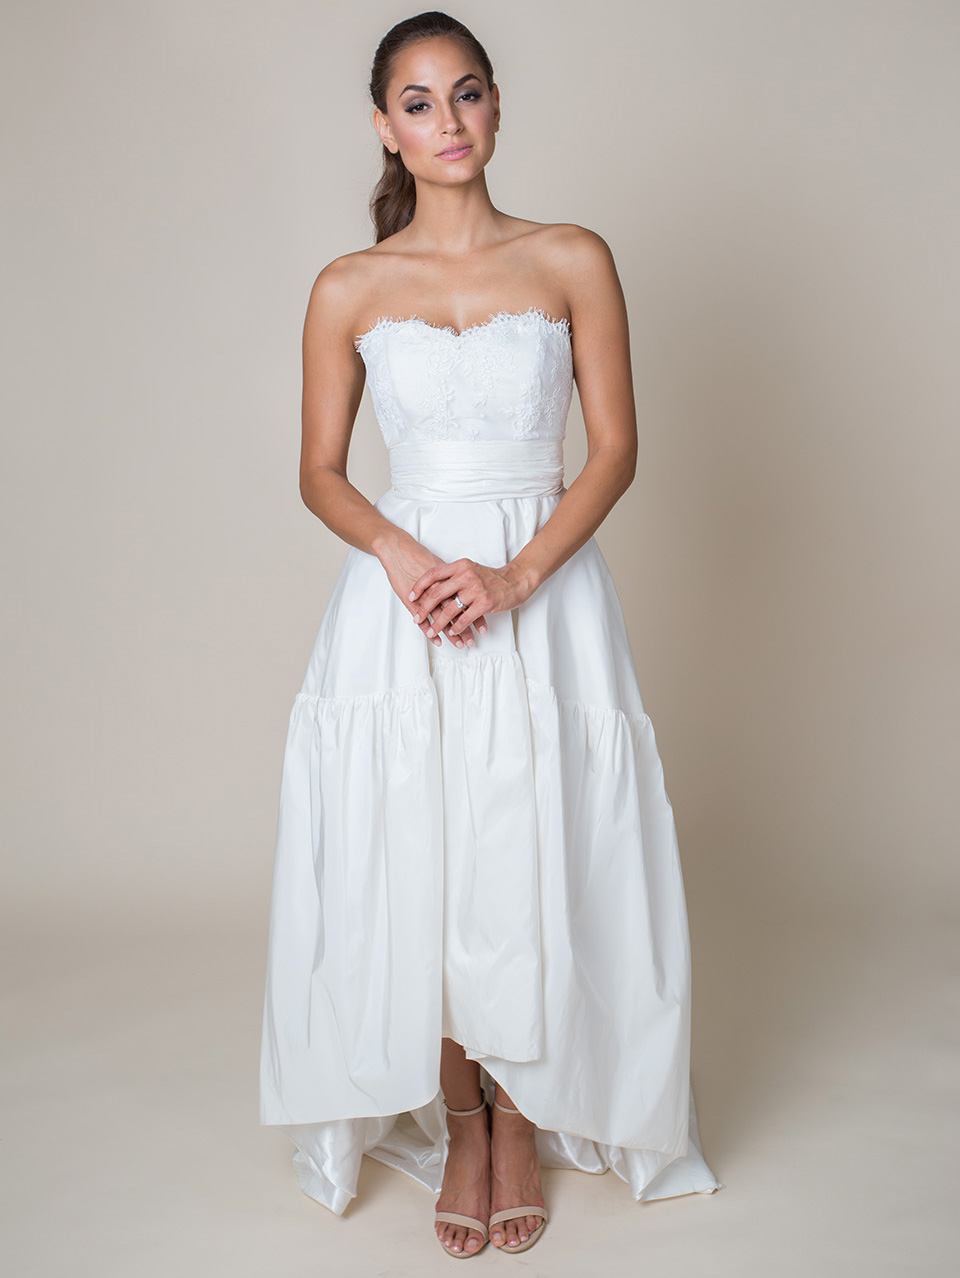 LACE BODICE + RUCHED BELT